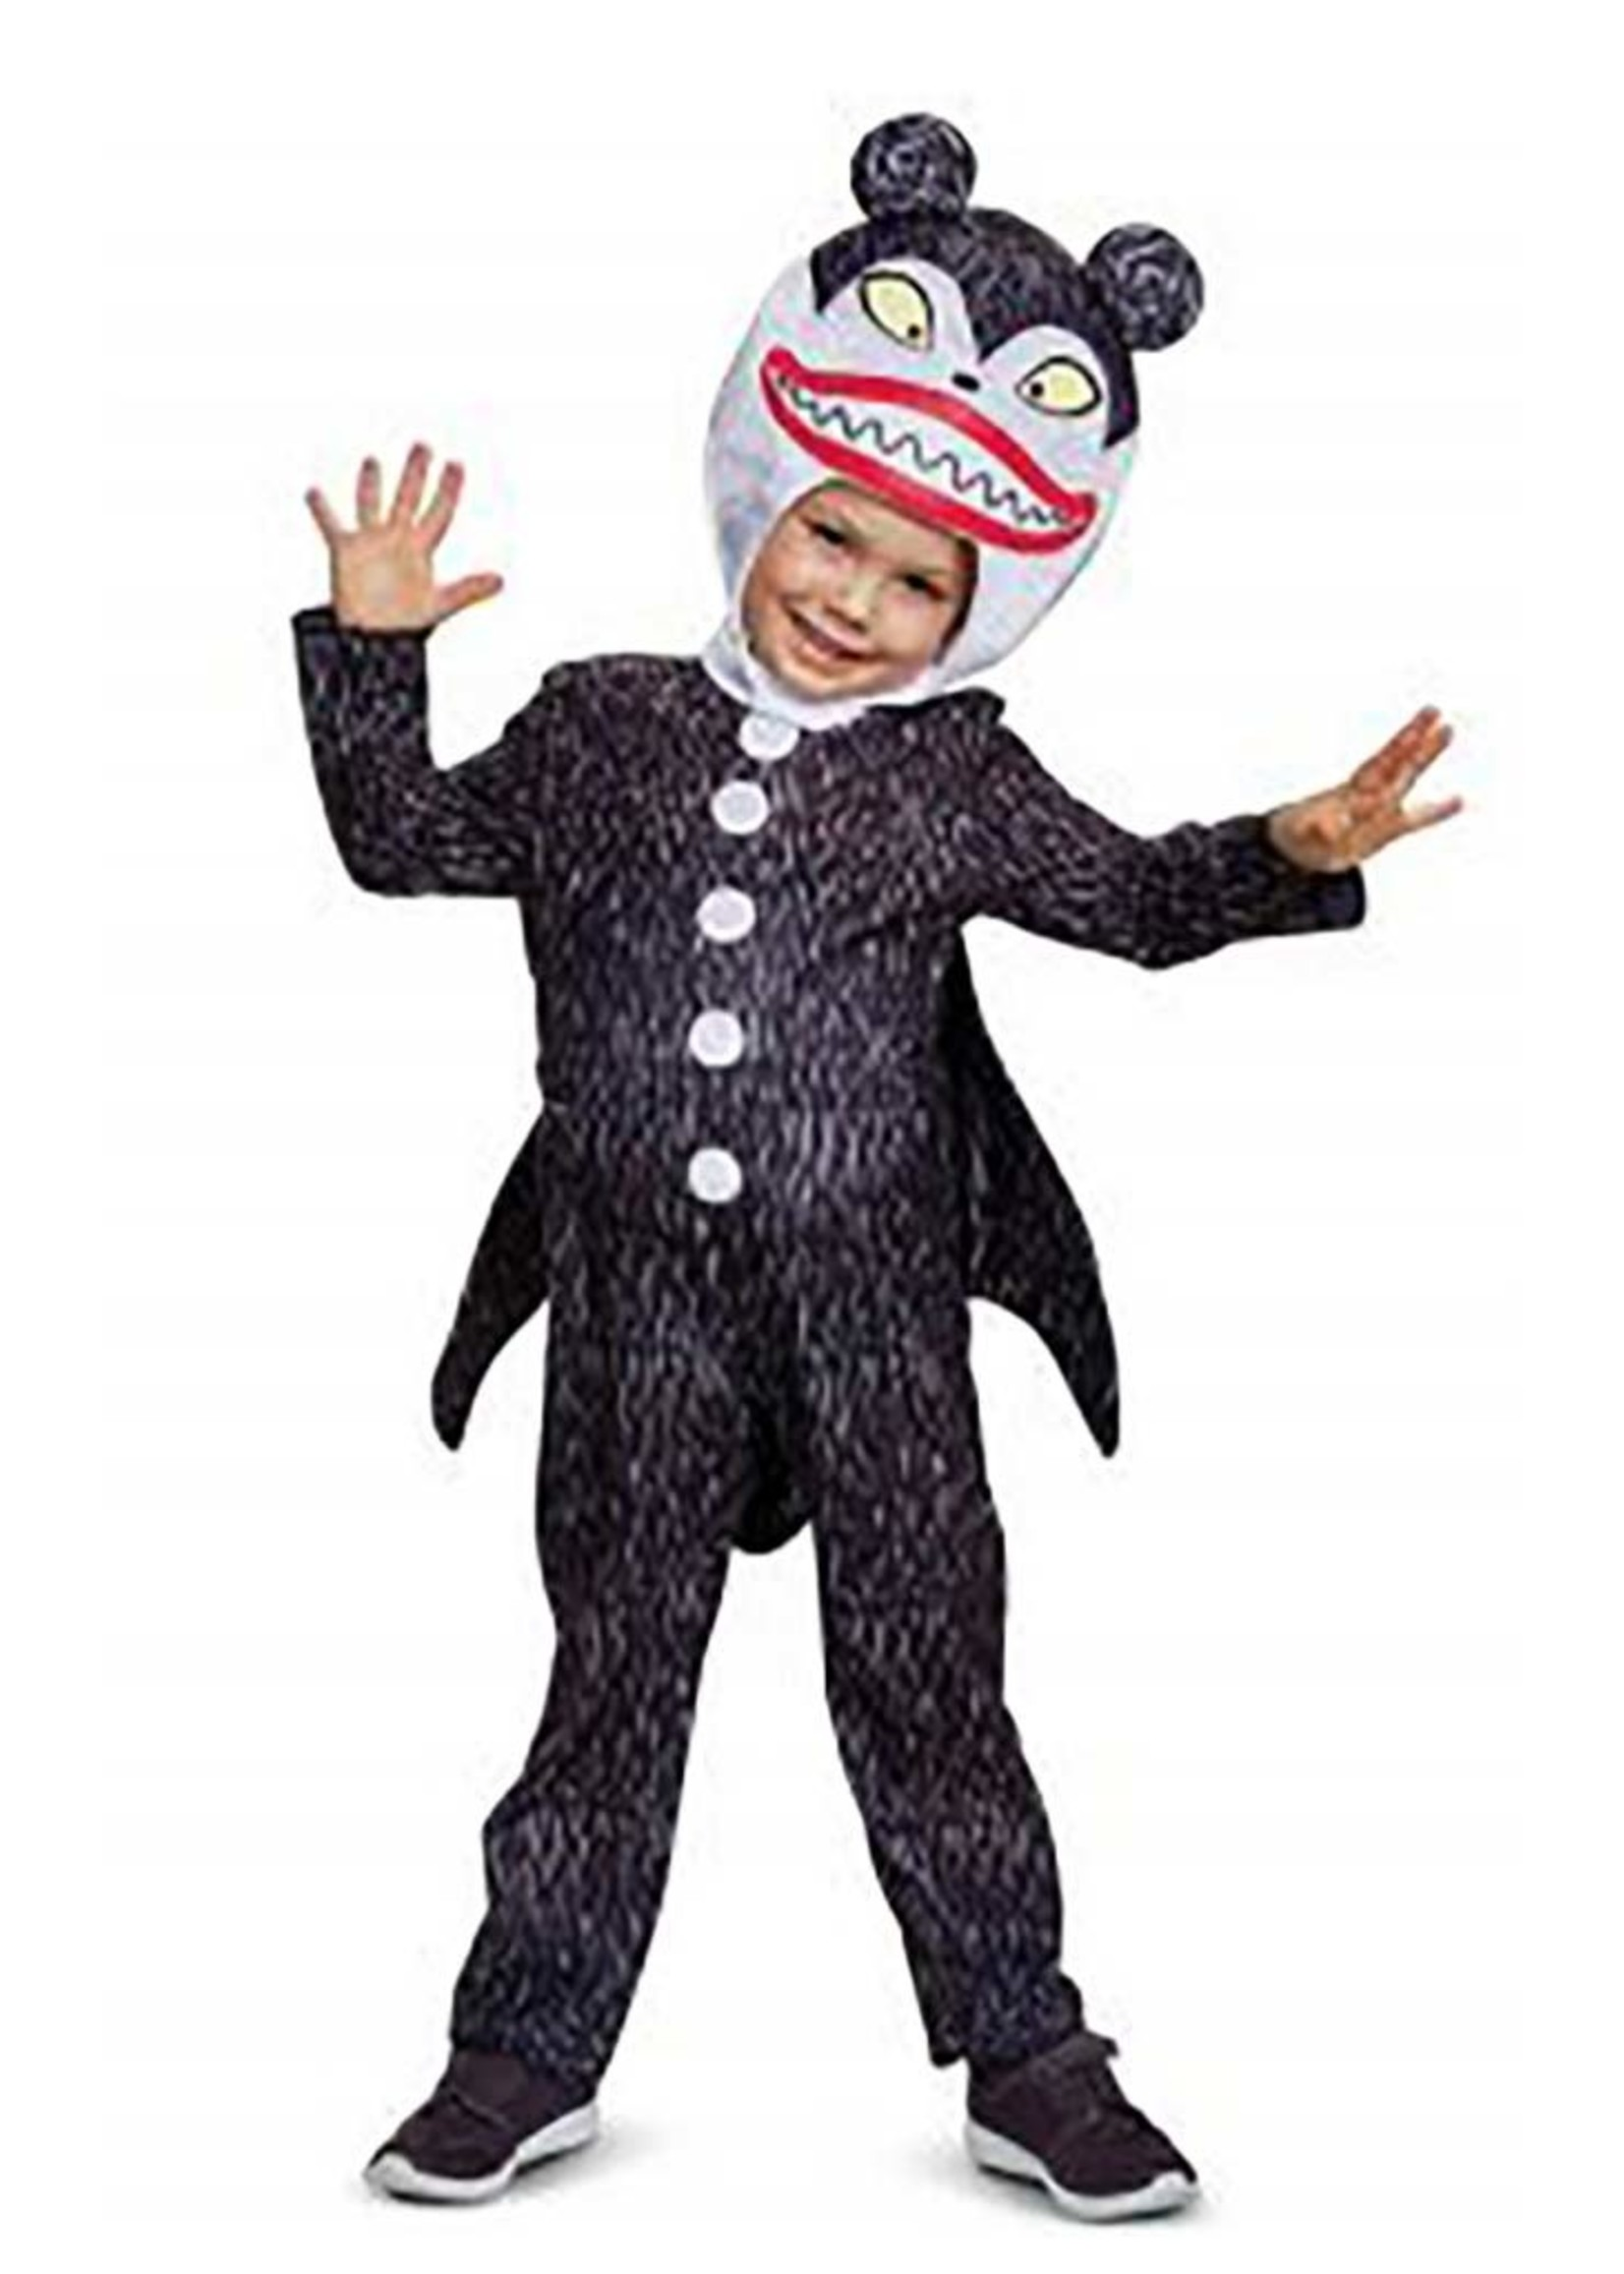 DISGUISE Scary Teddy - Nightmare Before Christmas - Boys